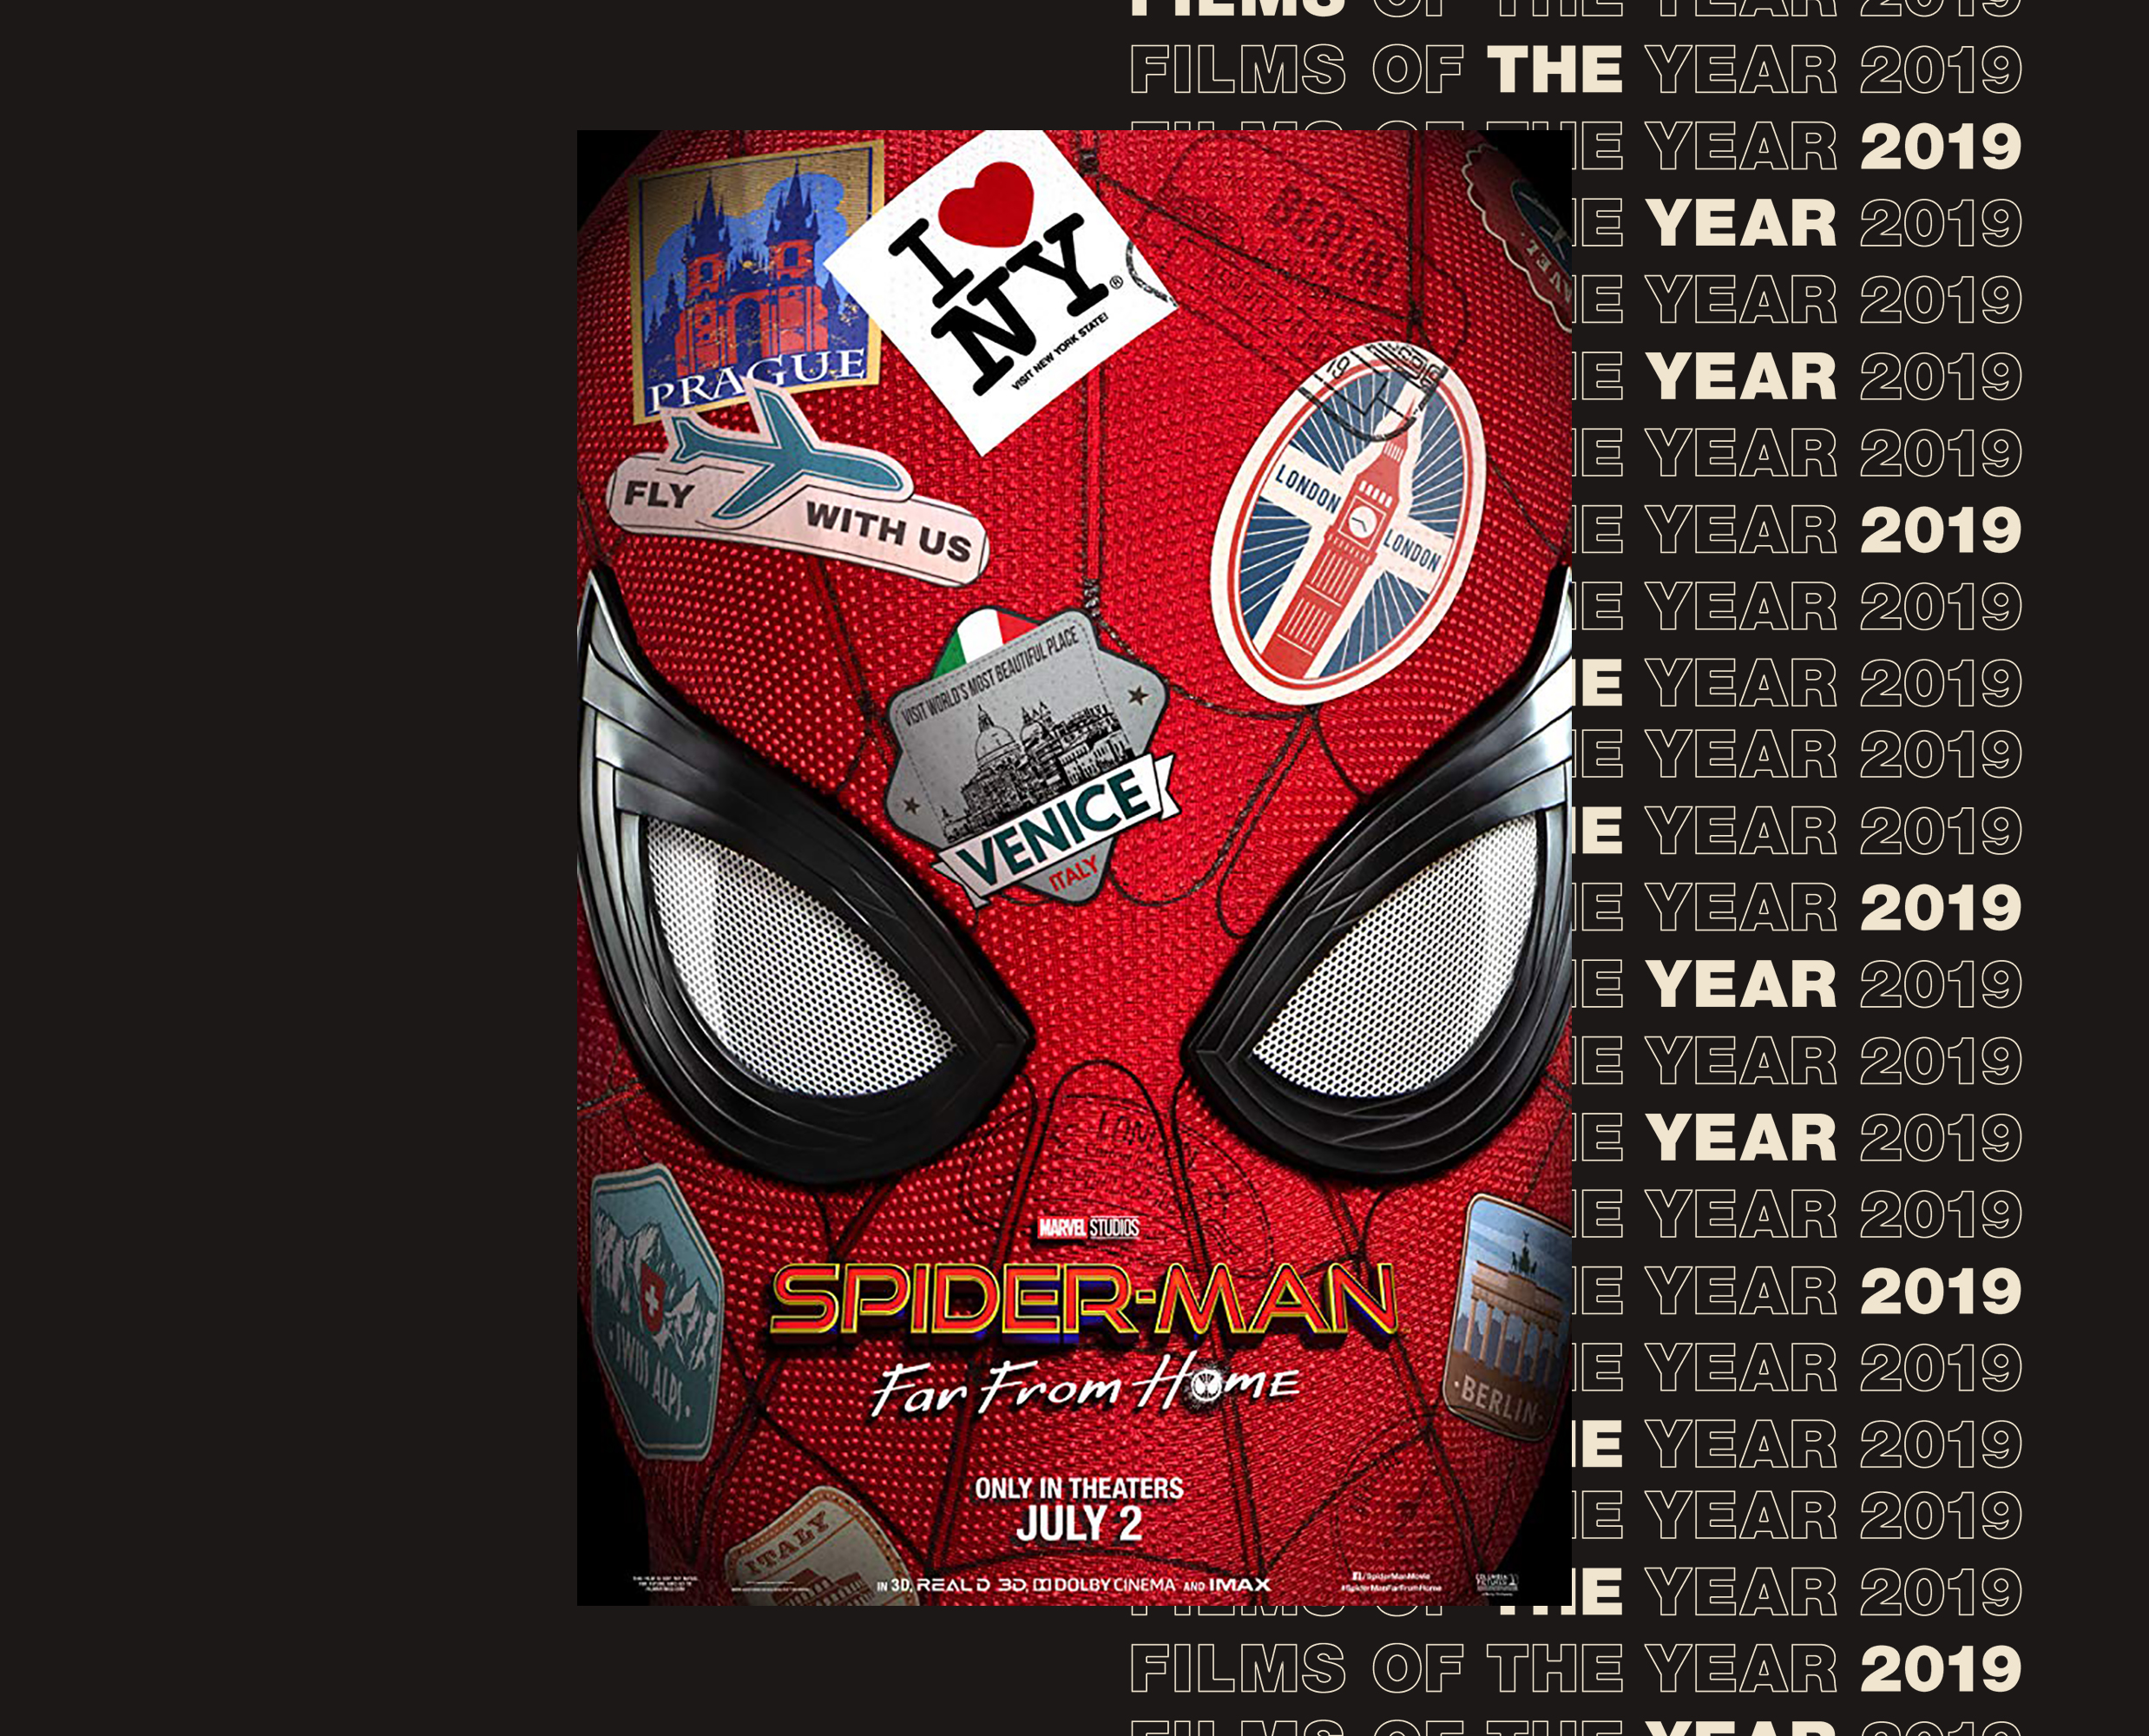 Films of the year